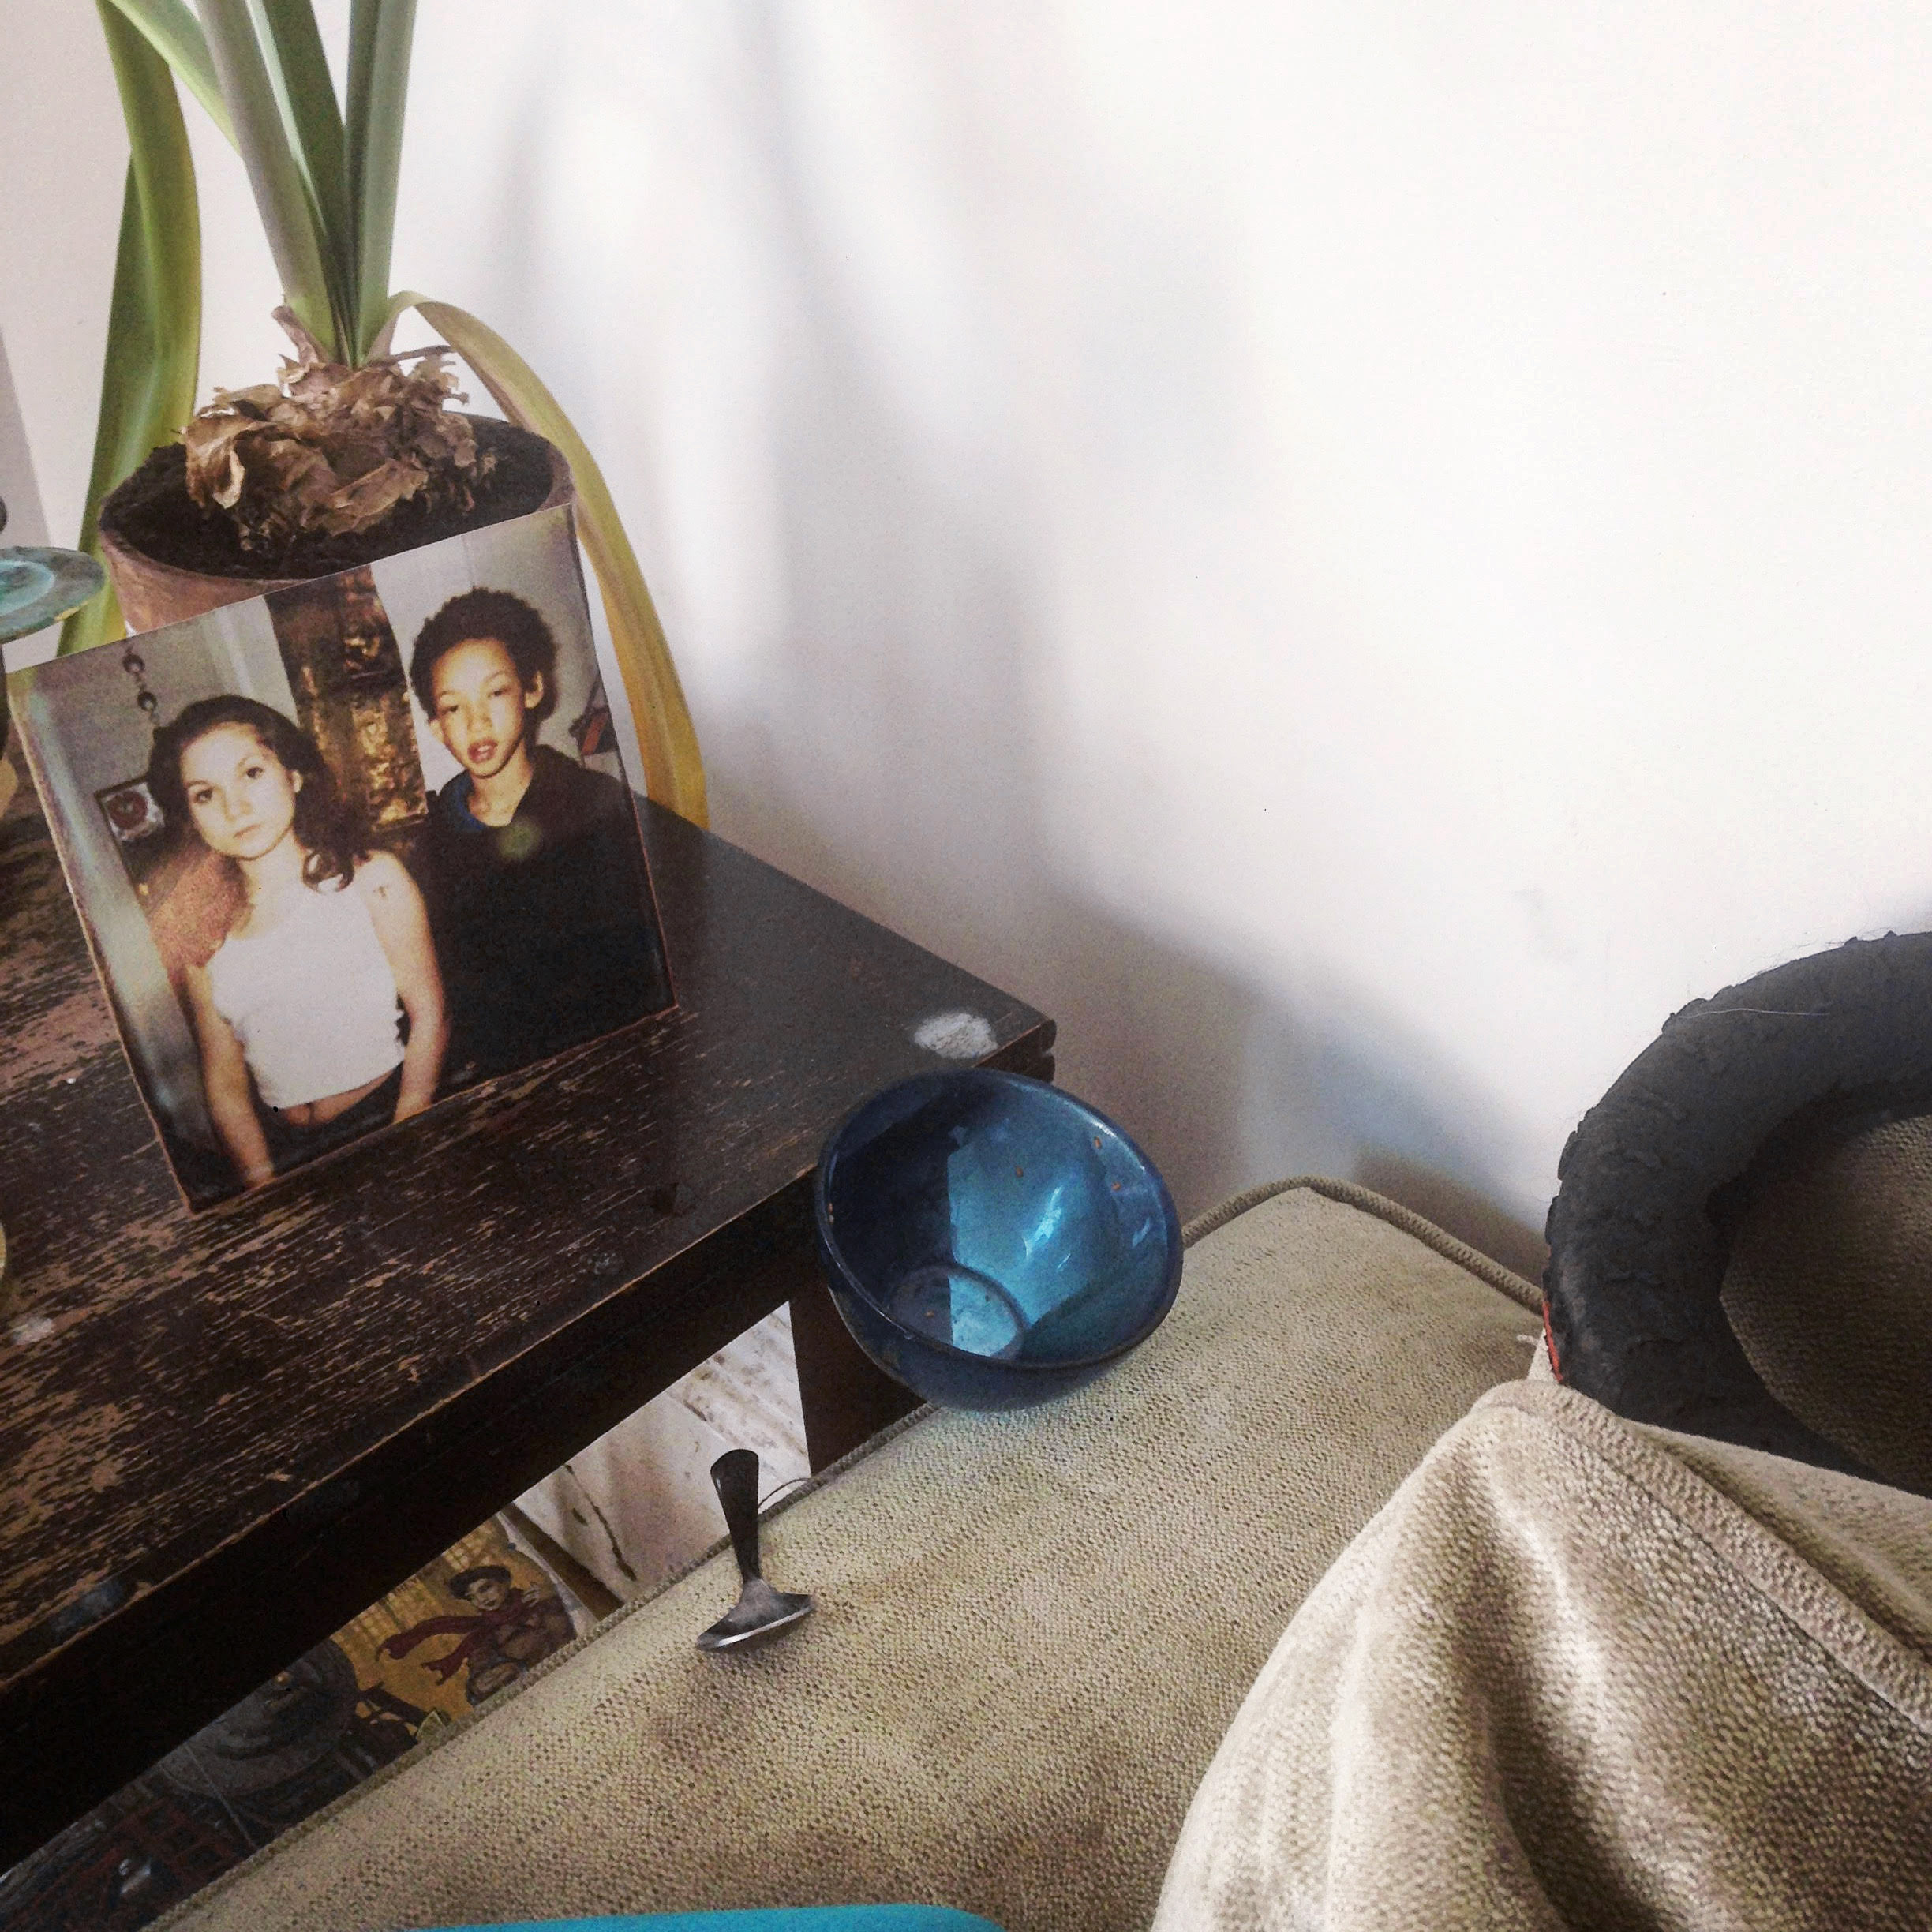 Photograph from NOTES - of a picture in a frame, plant, spoon and bowl